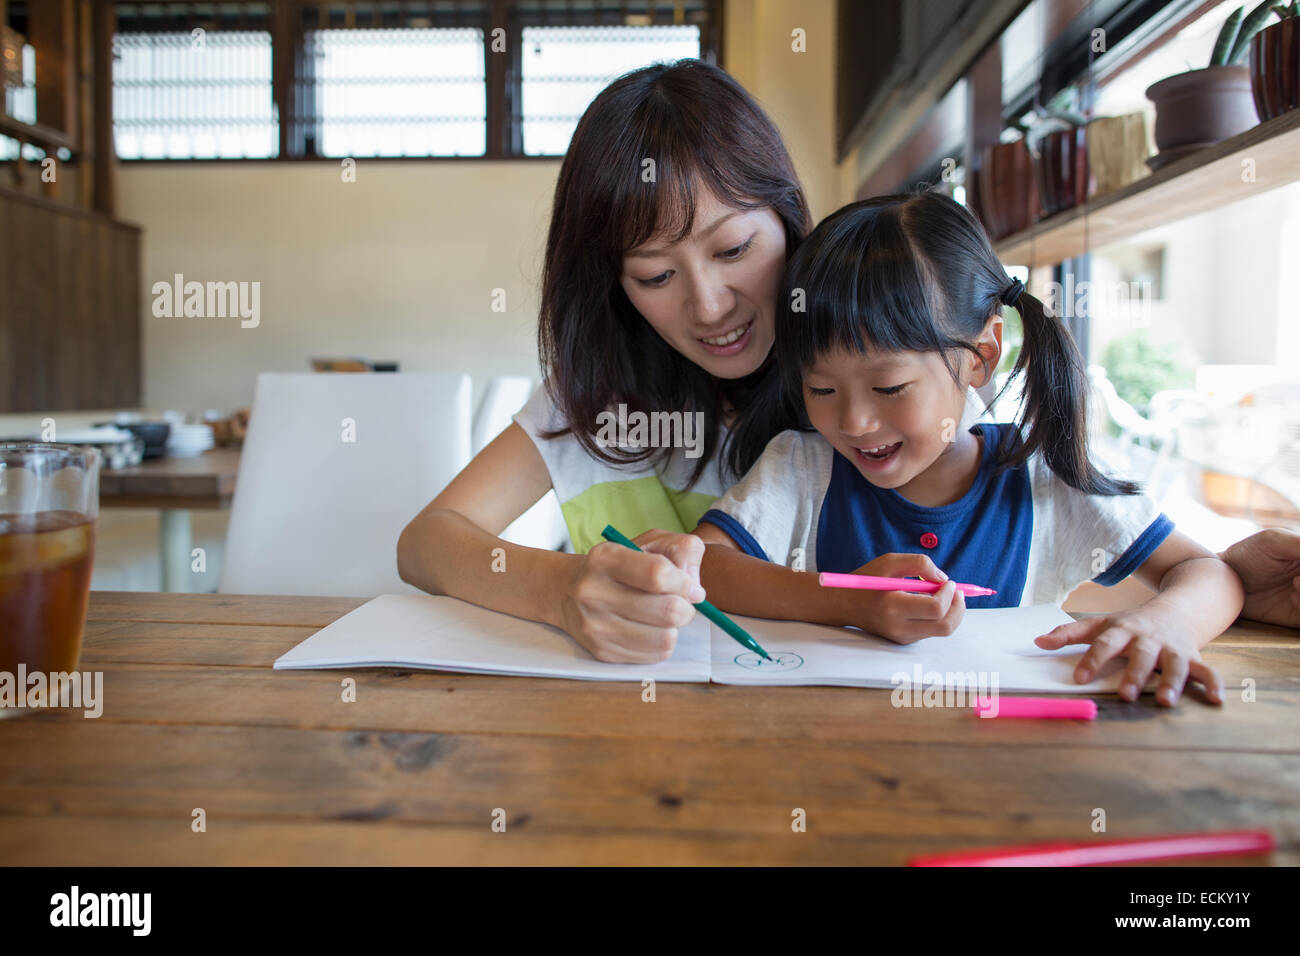 Mother and daughter sitting at a table, drawing with felt tip pens, smiling. Stock Foto